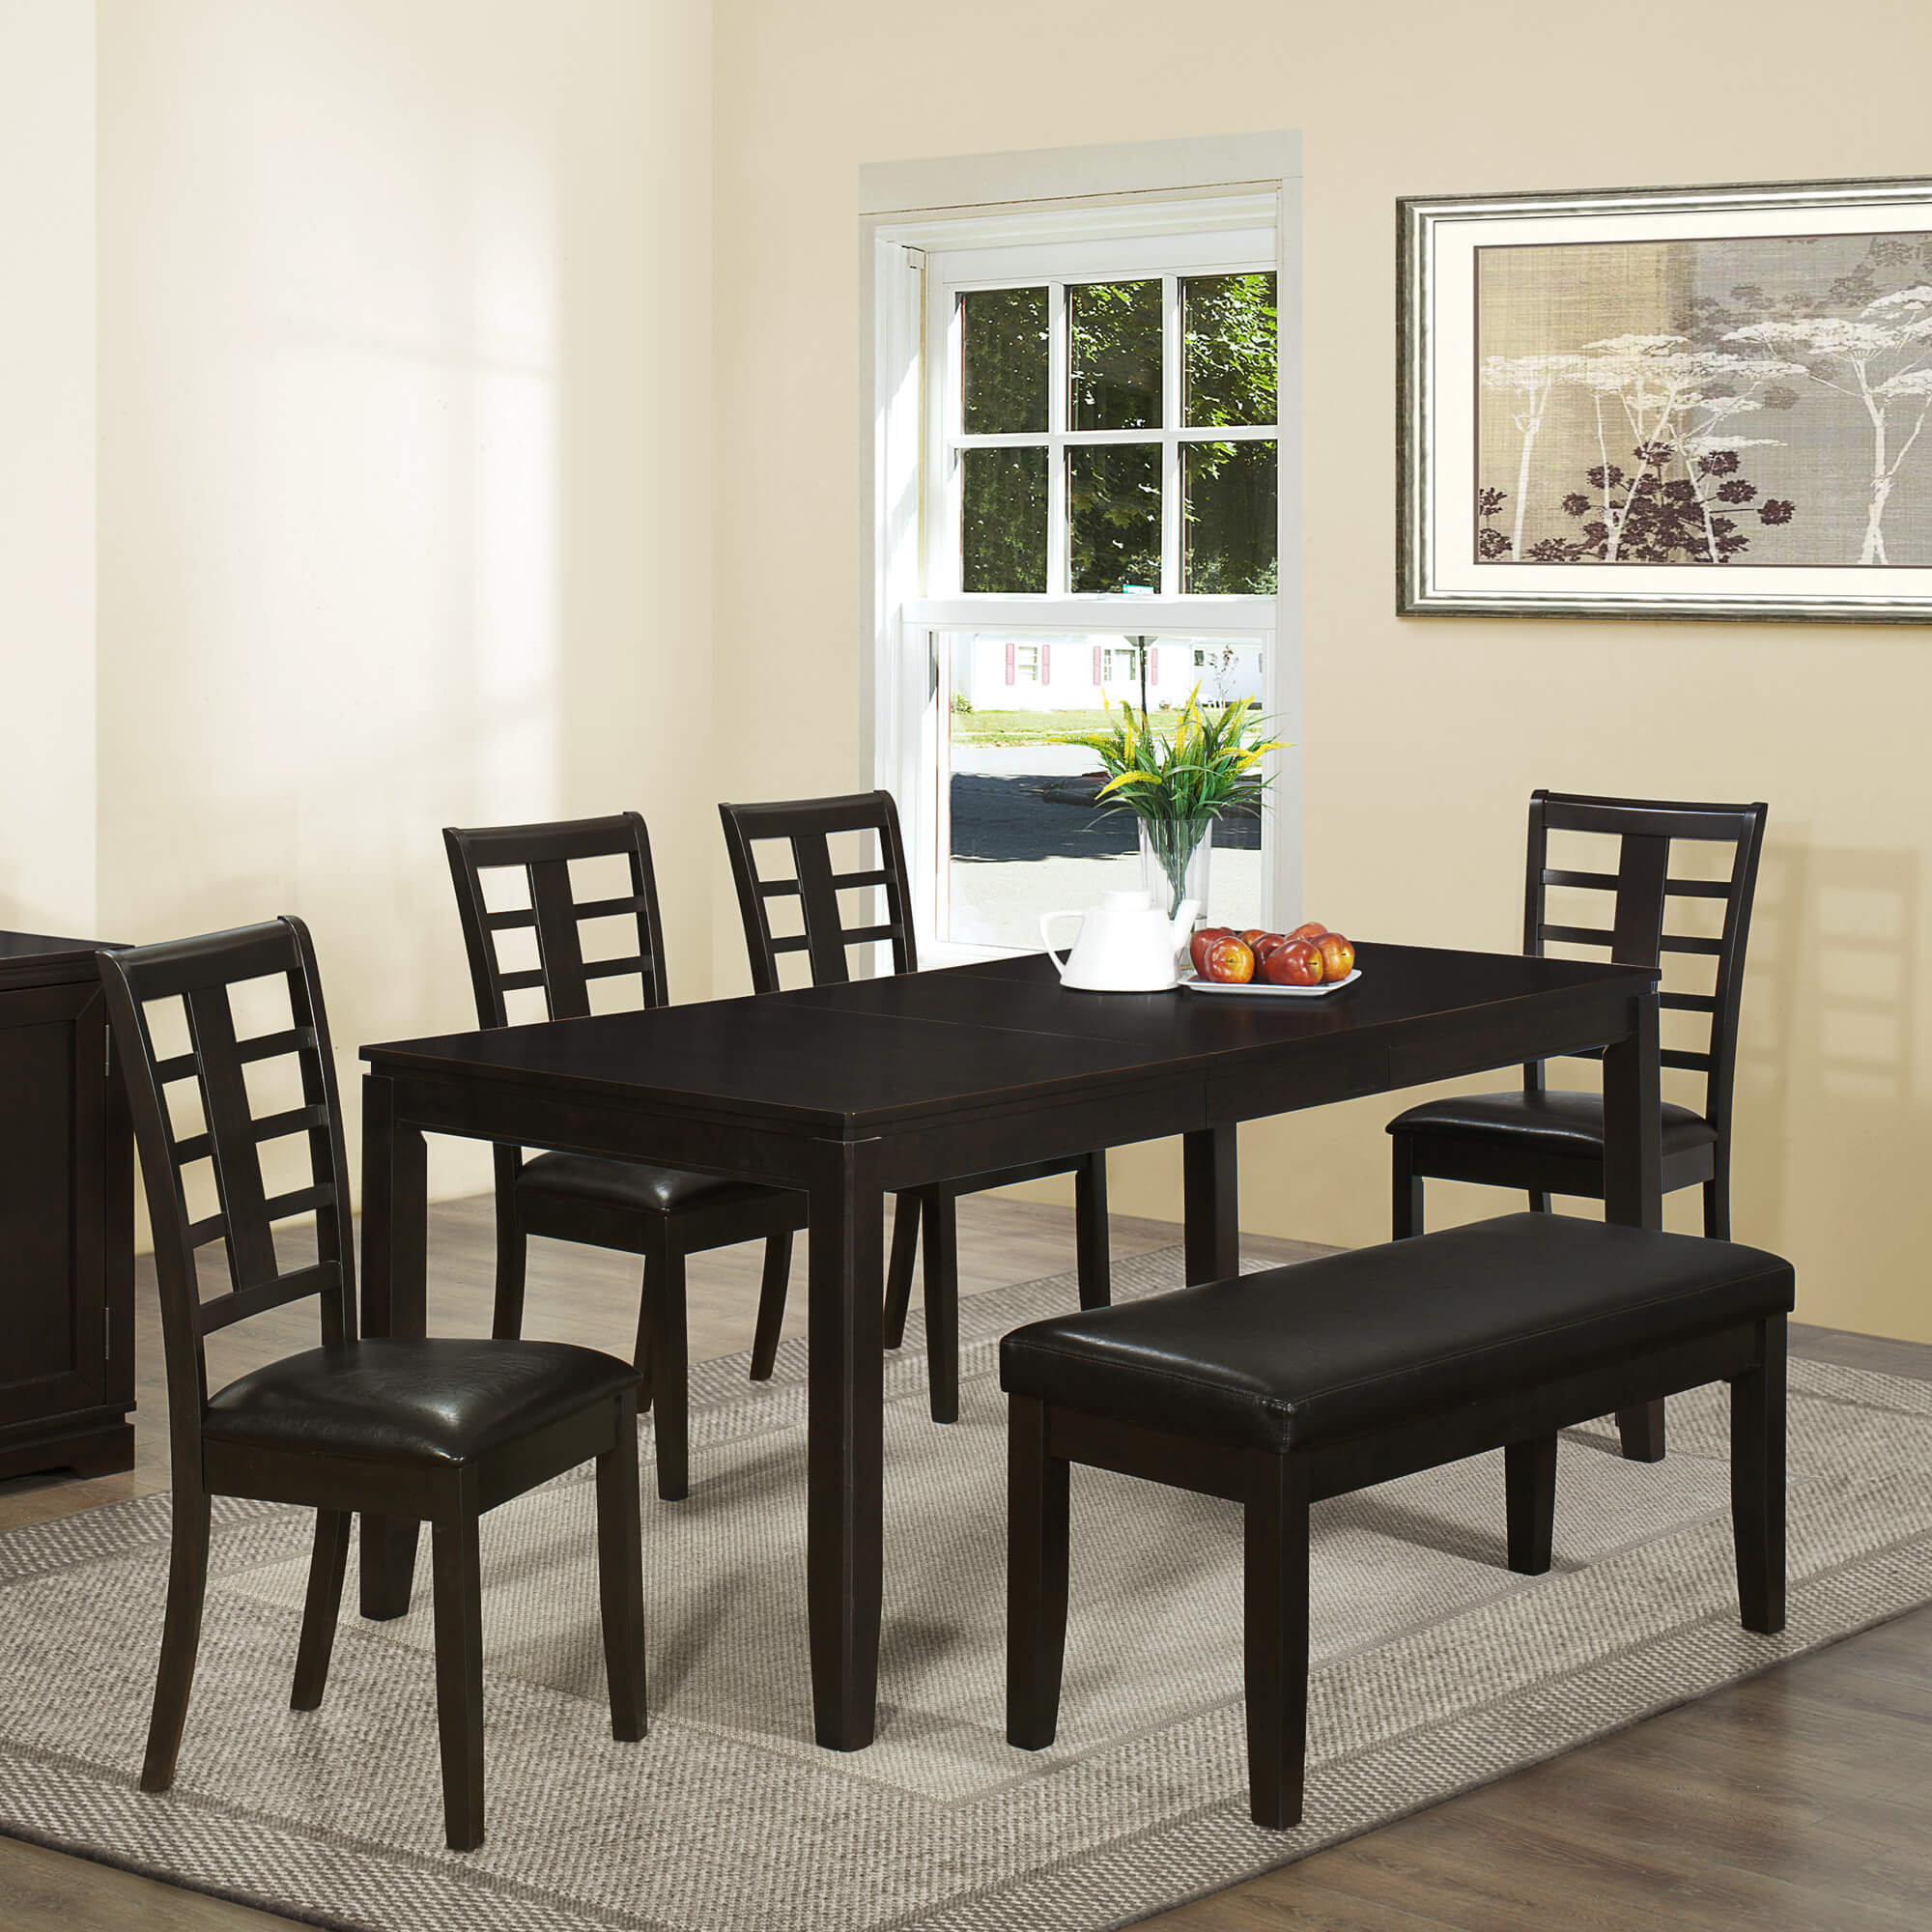 26 big small dining room sets with bench seating for Small dining table for 6